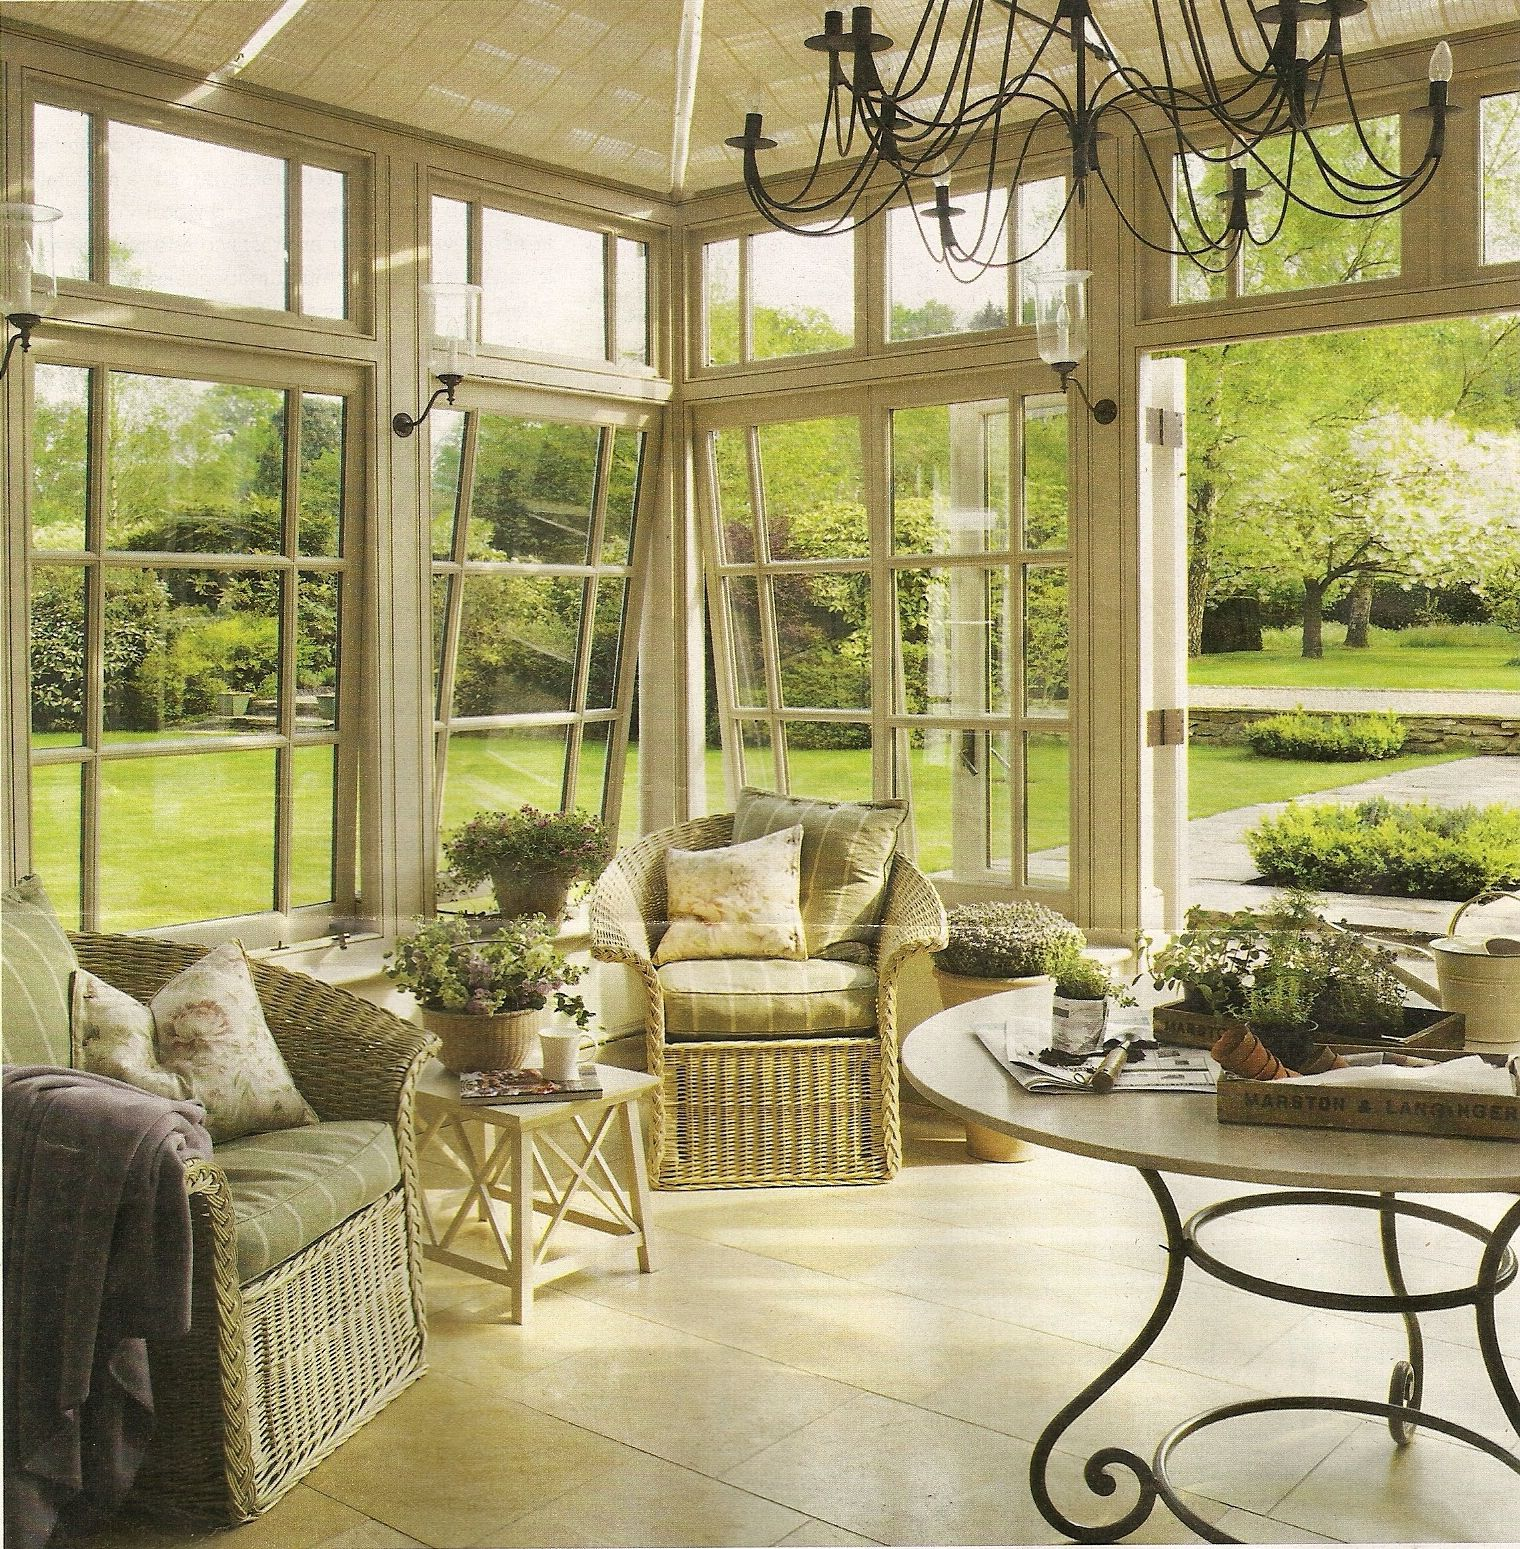 Window ideas for a sunroom  pin by jessica burke on  tamy lane  pinterest  sunroom